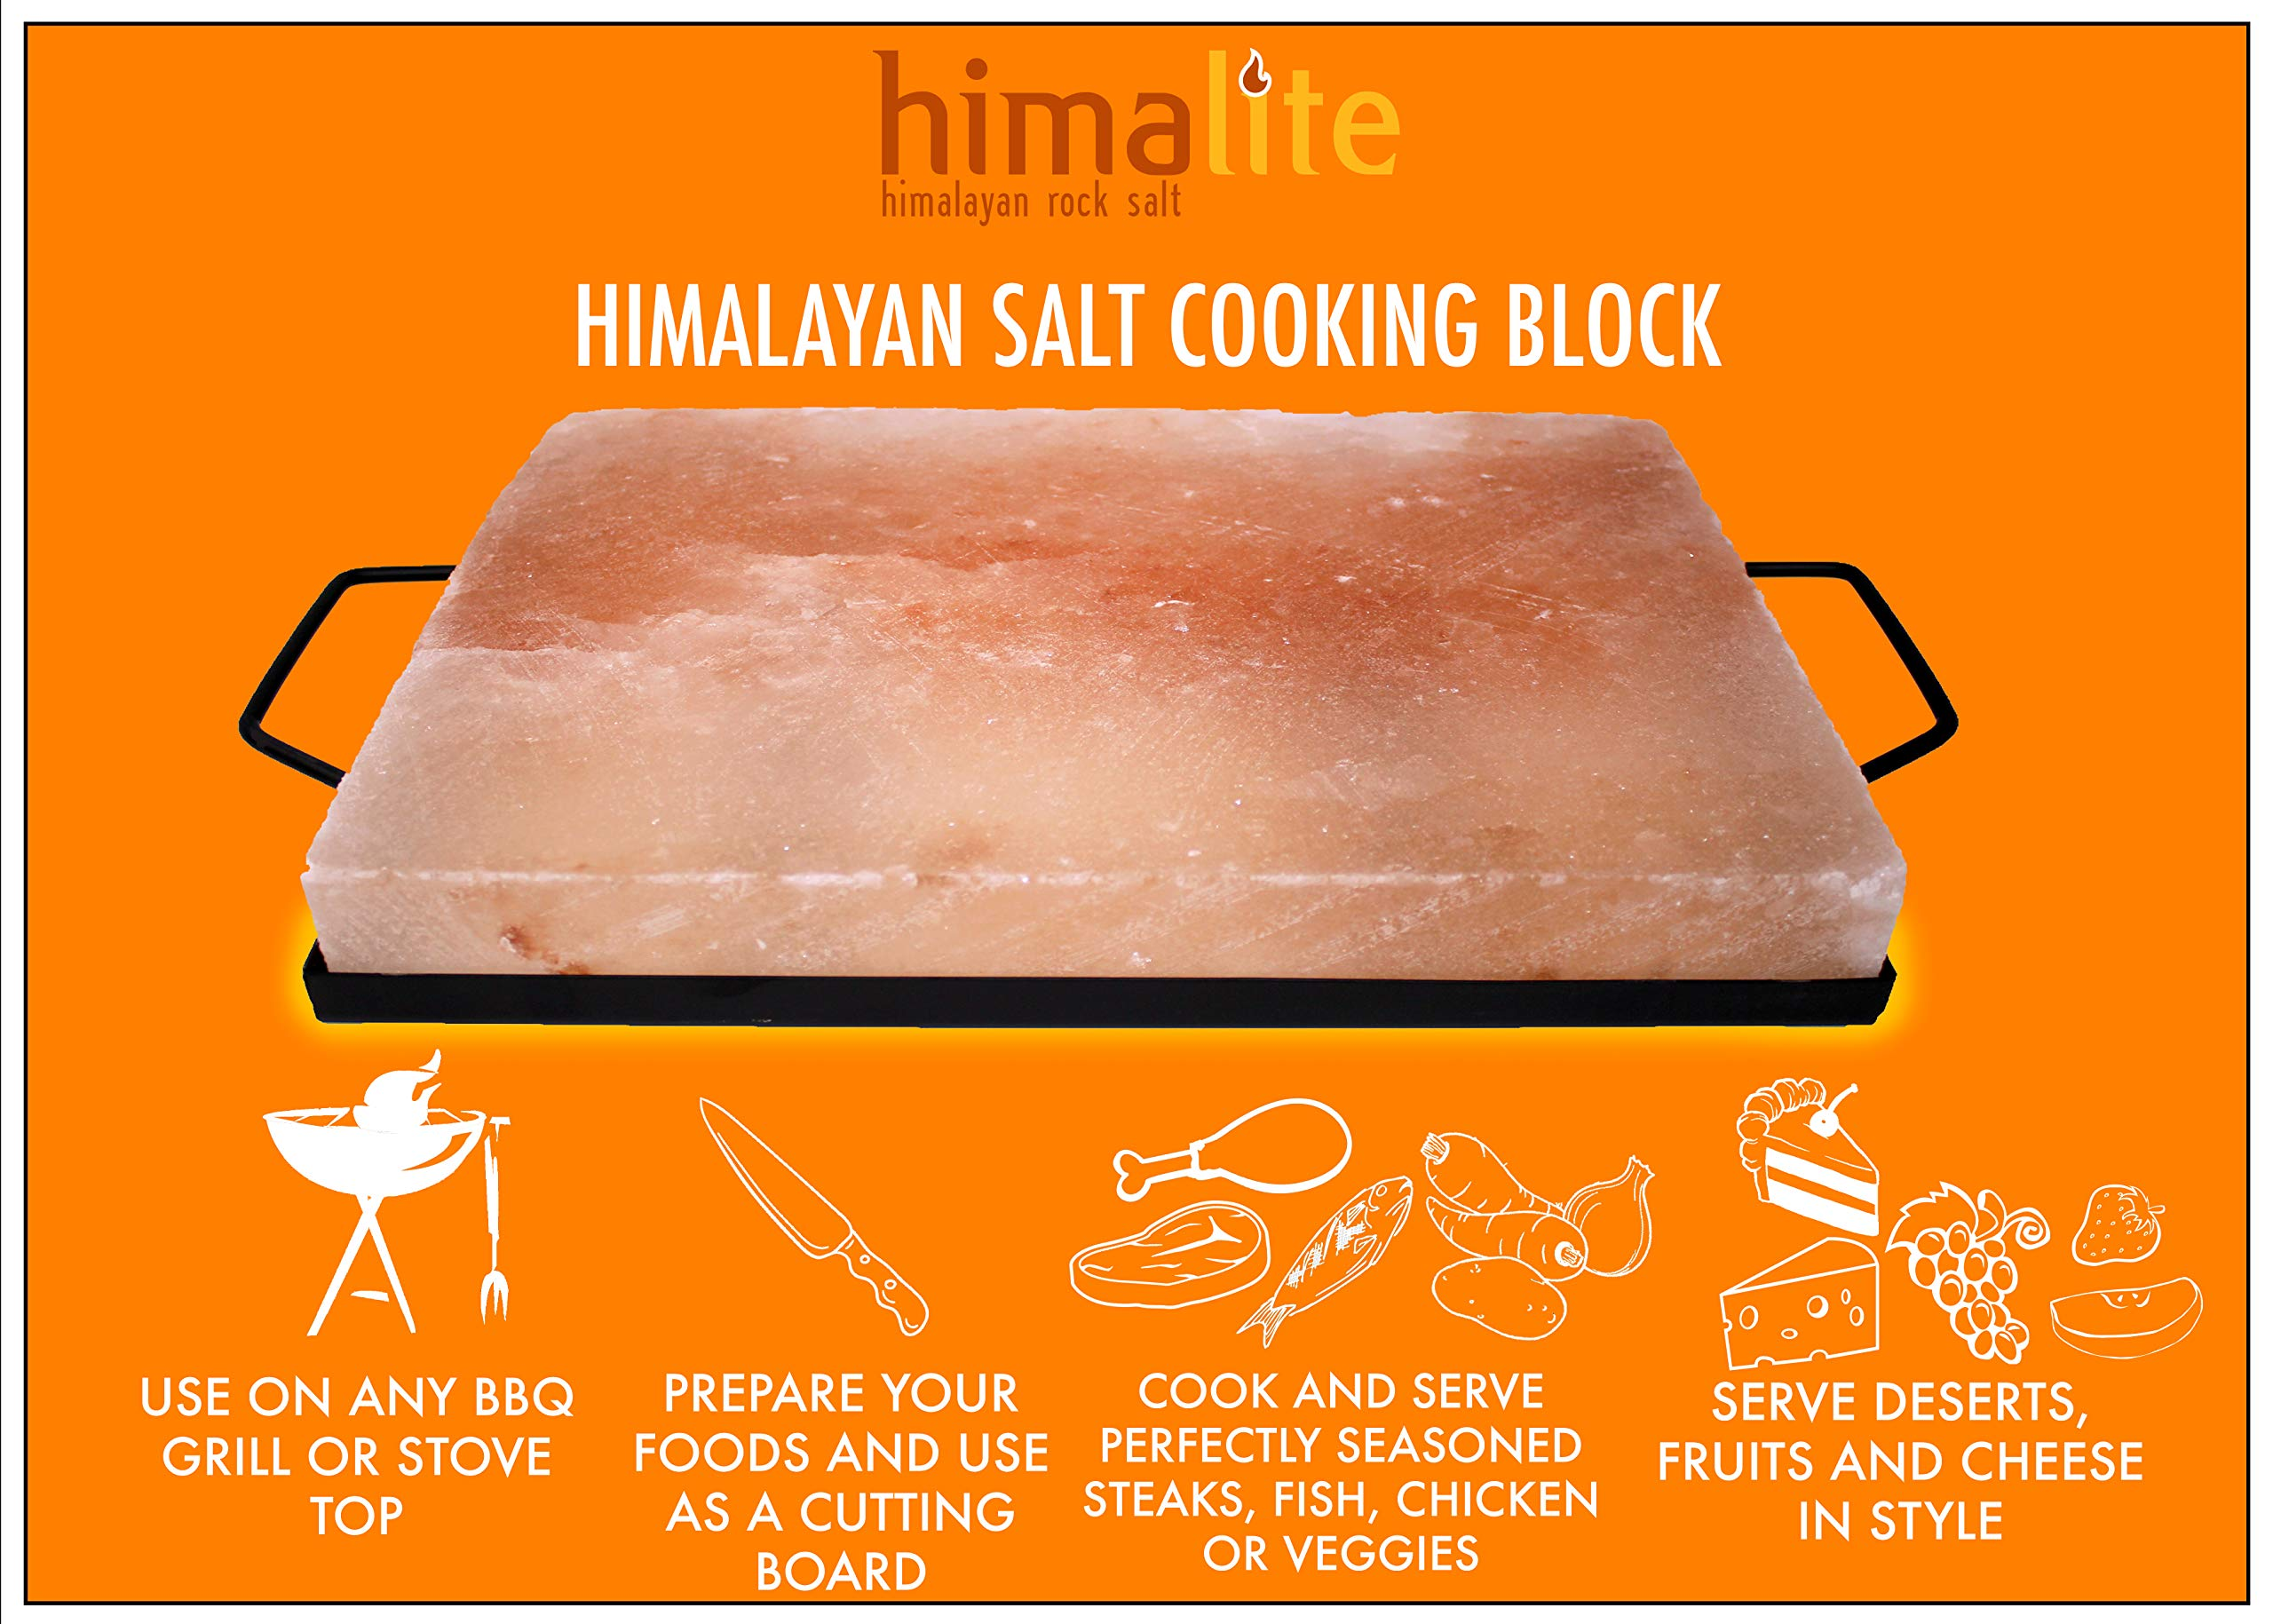 Himalite Himalayan Pink Salt Cooking Block and Tray Set 12'' x 8'' x 1.5'' for Cooking, Grilling, Cutting and Serving with Metal Tray Himalayan Rock Salt by Himalite (Image #6)